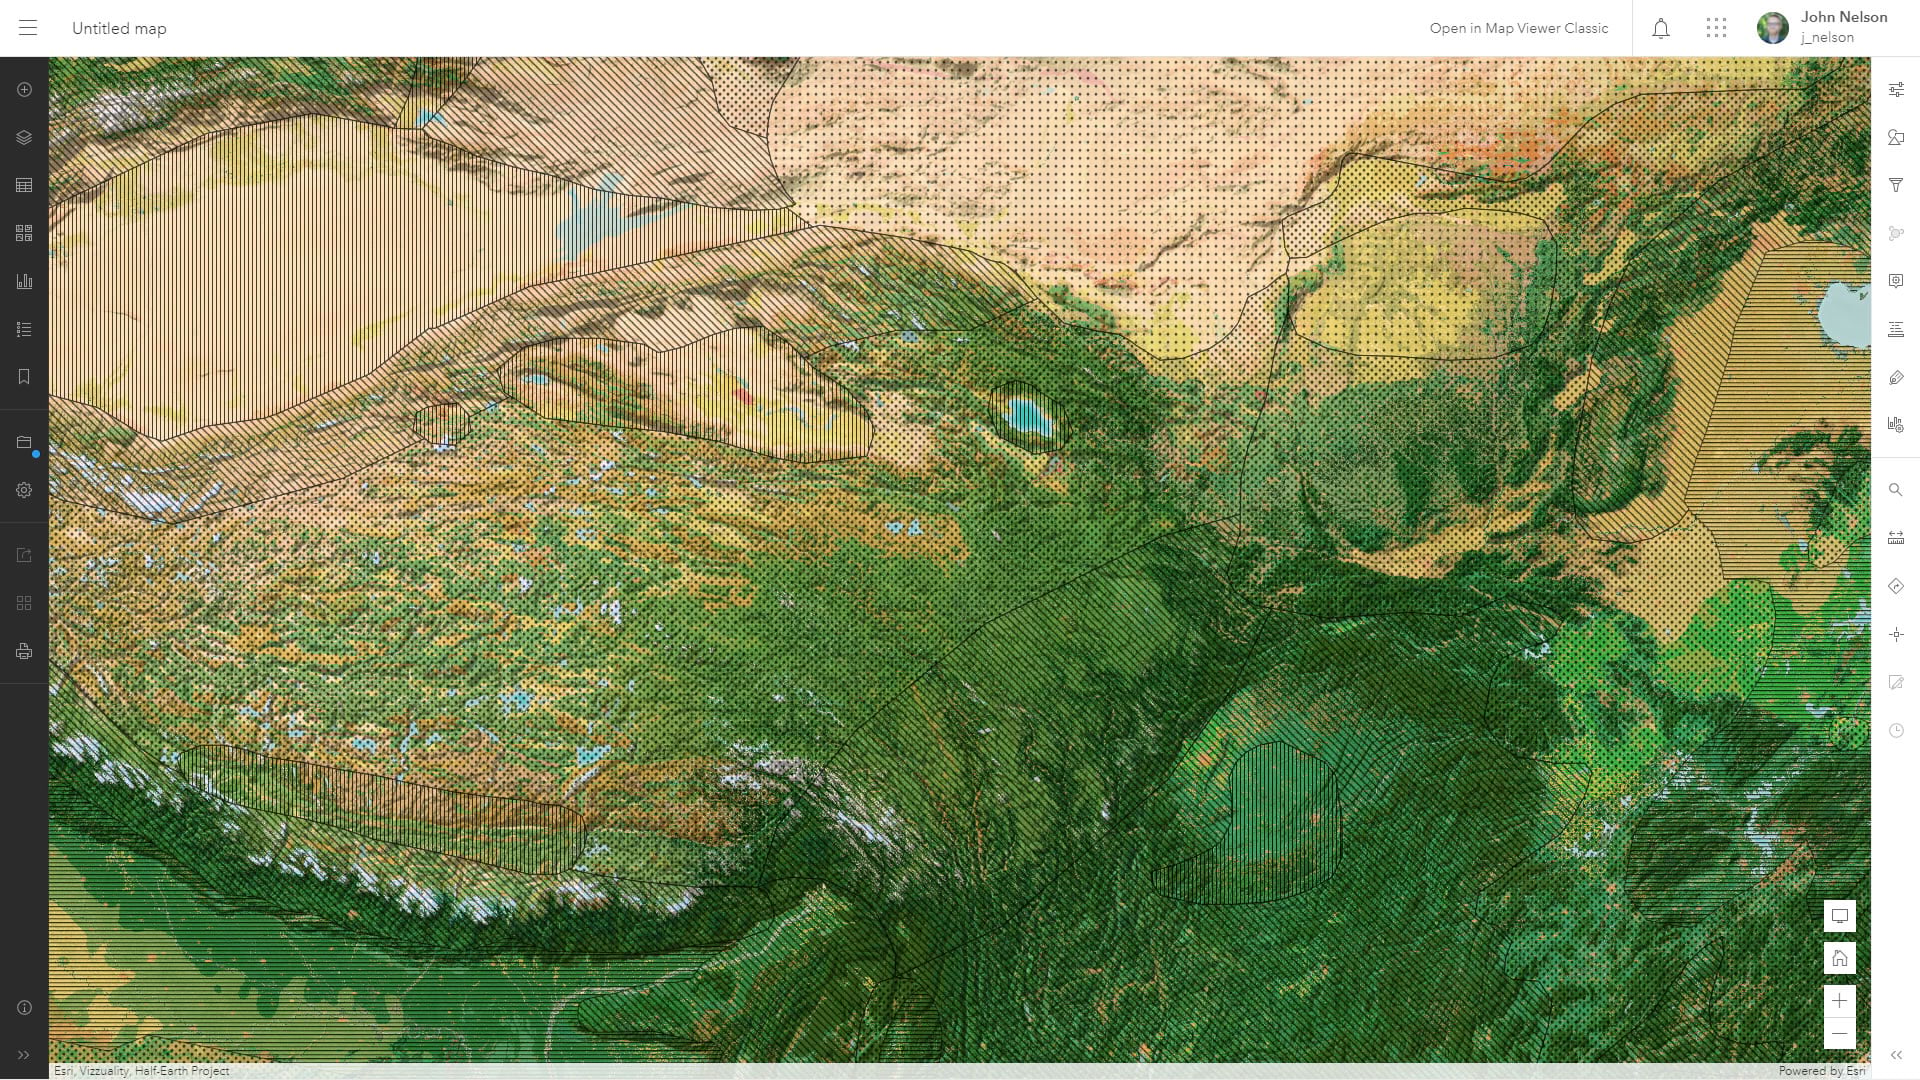 Hatched fills in ArcGIS Online with a Vibrant basemap.